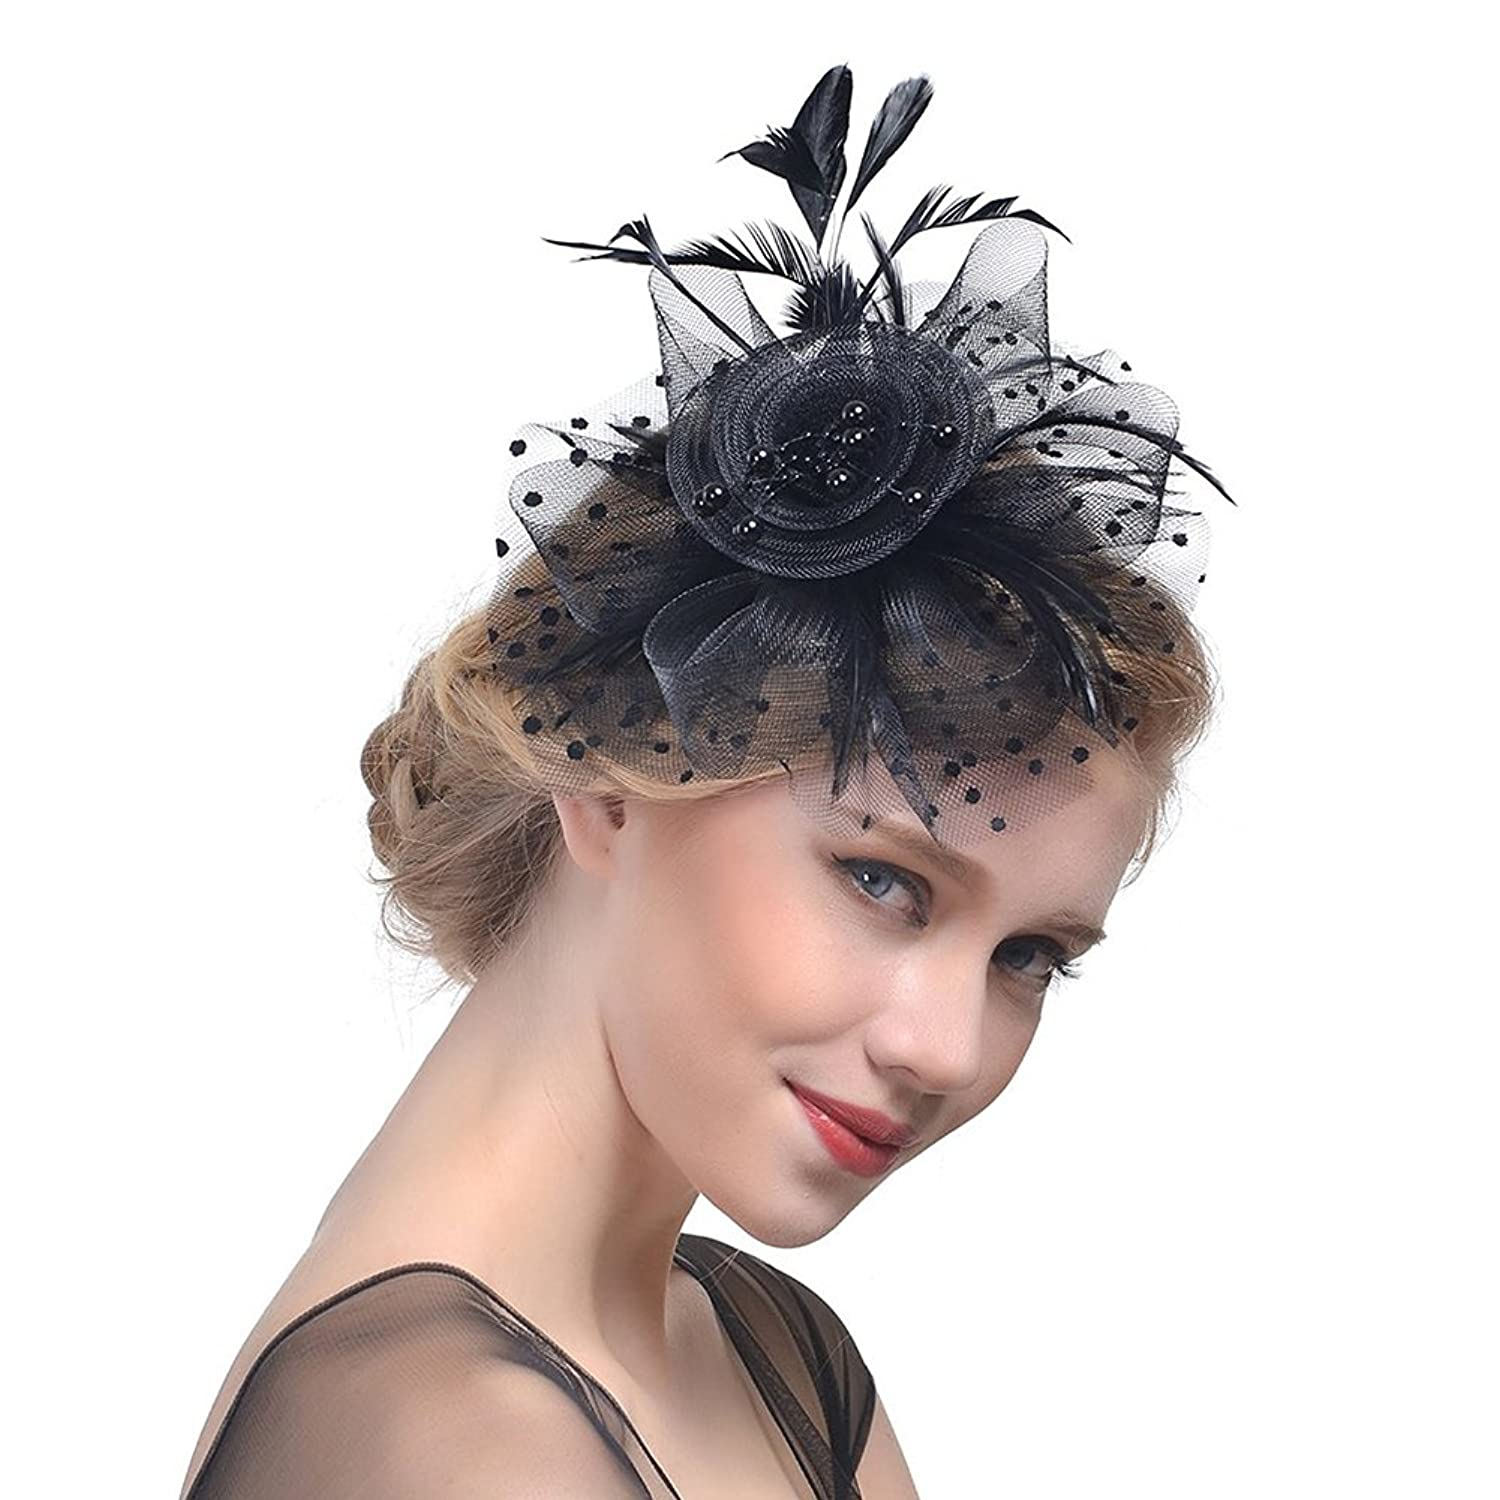 Women's Vintage Hats | Old Fashioned Hats | Retro Hats DRESHOW Fascinators Hat Flower Mesh Ribbons Feathers on a Headband and a Forked Clip Cocktail Tea Party Kentucky Derby Hat Headwear for Girls and Women $11.99 AT vintagedancer.com